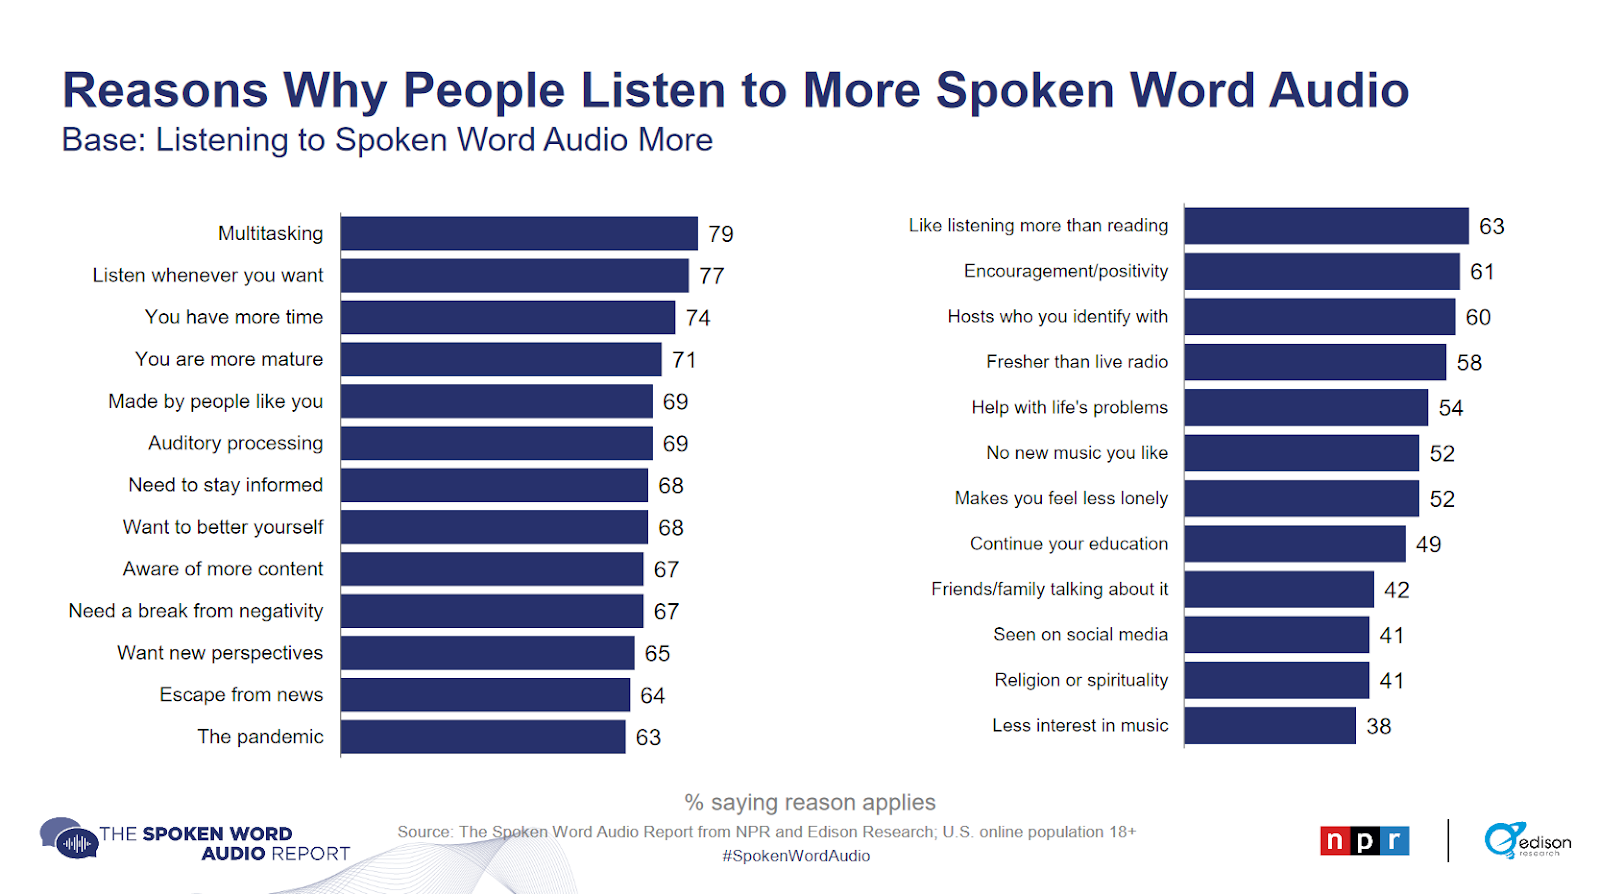 Reasons why people listen to more spoken word audio